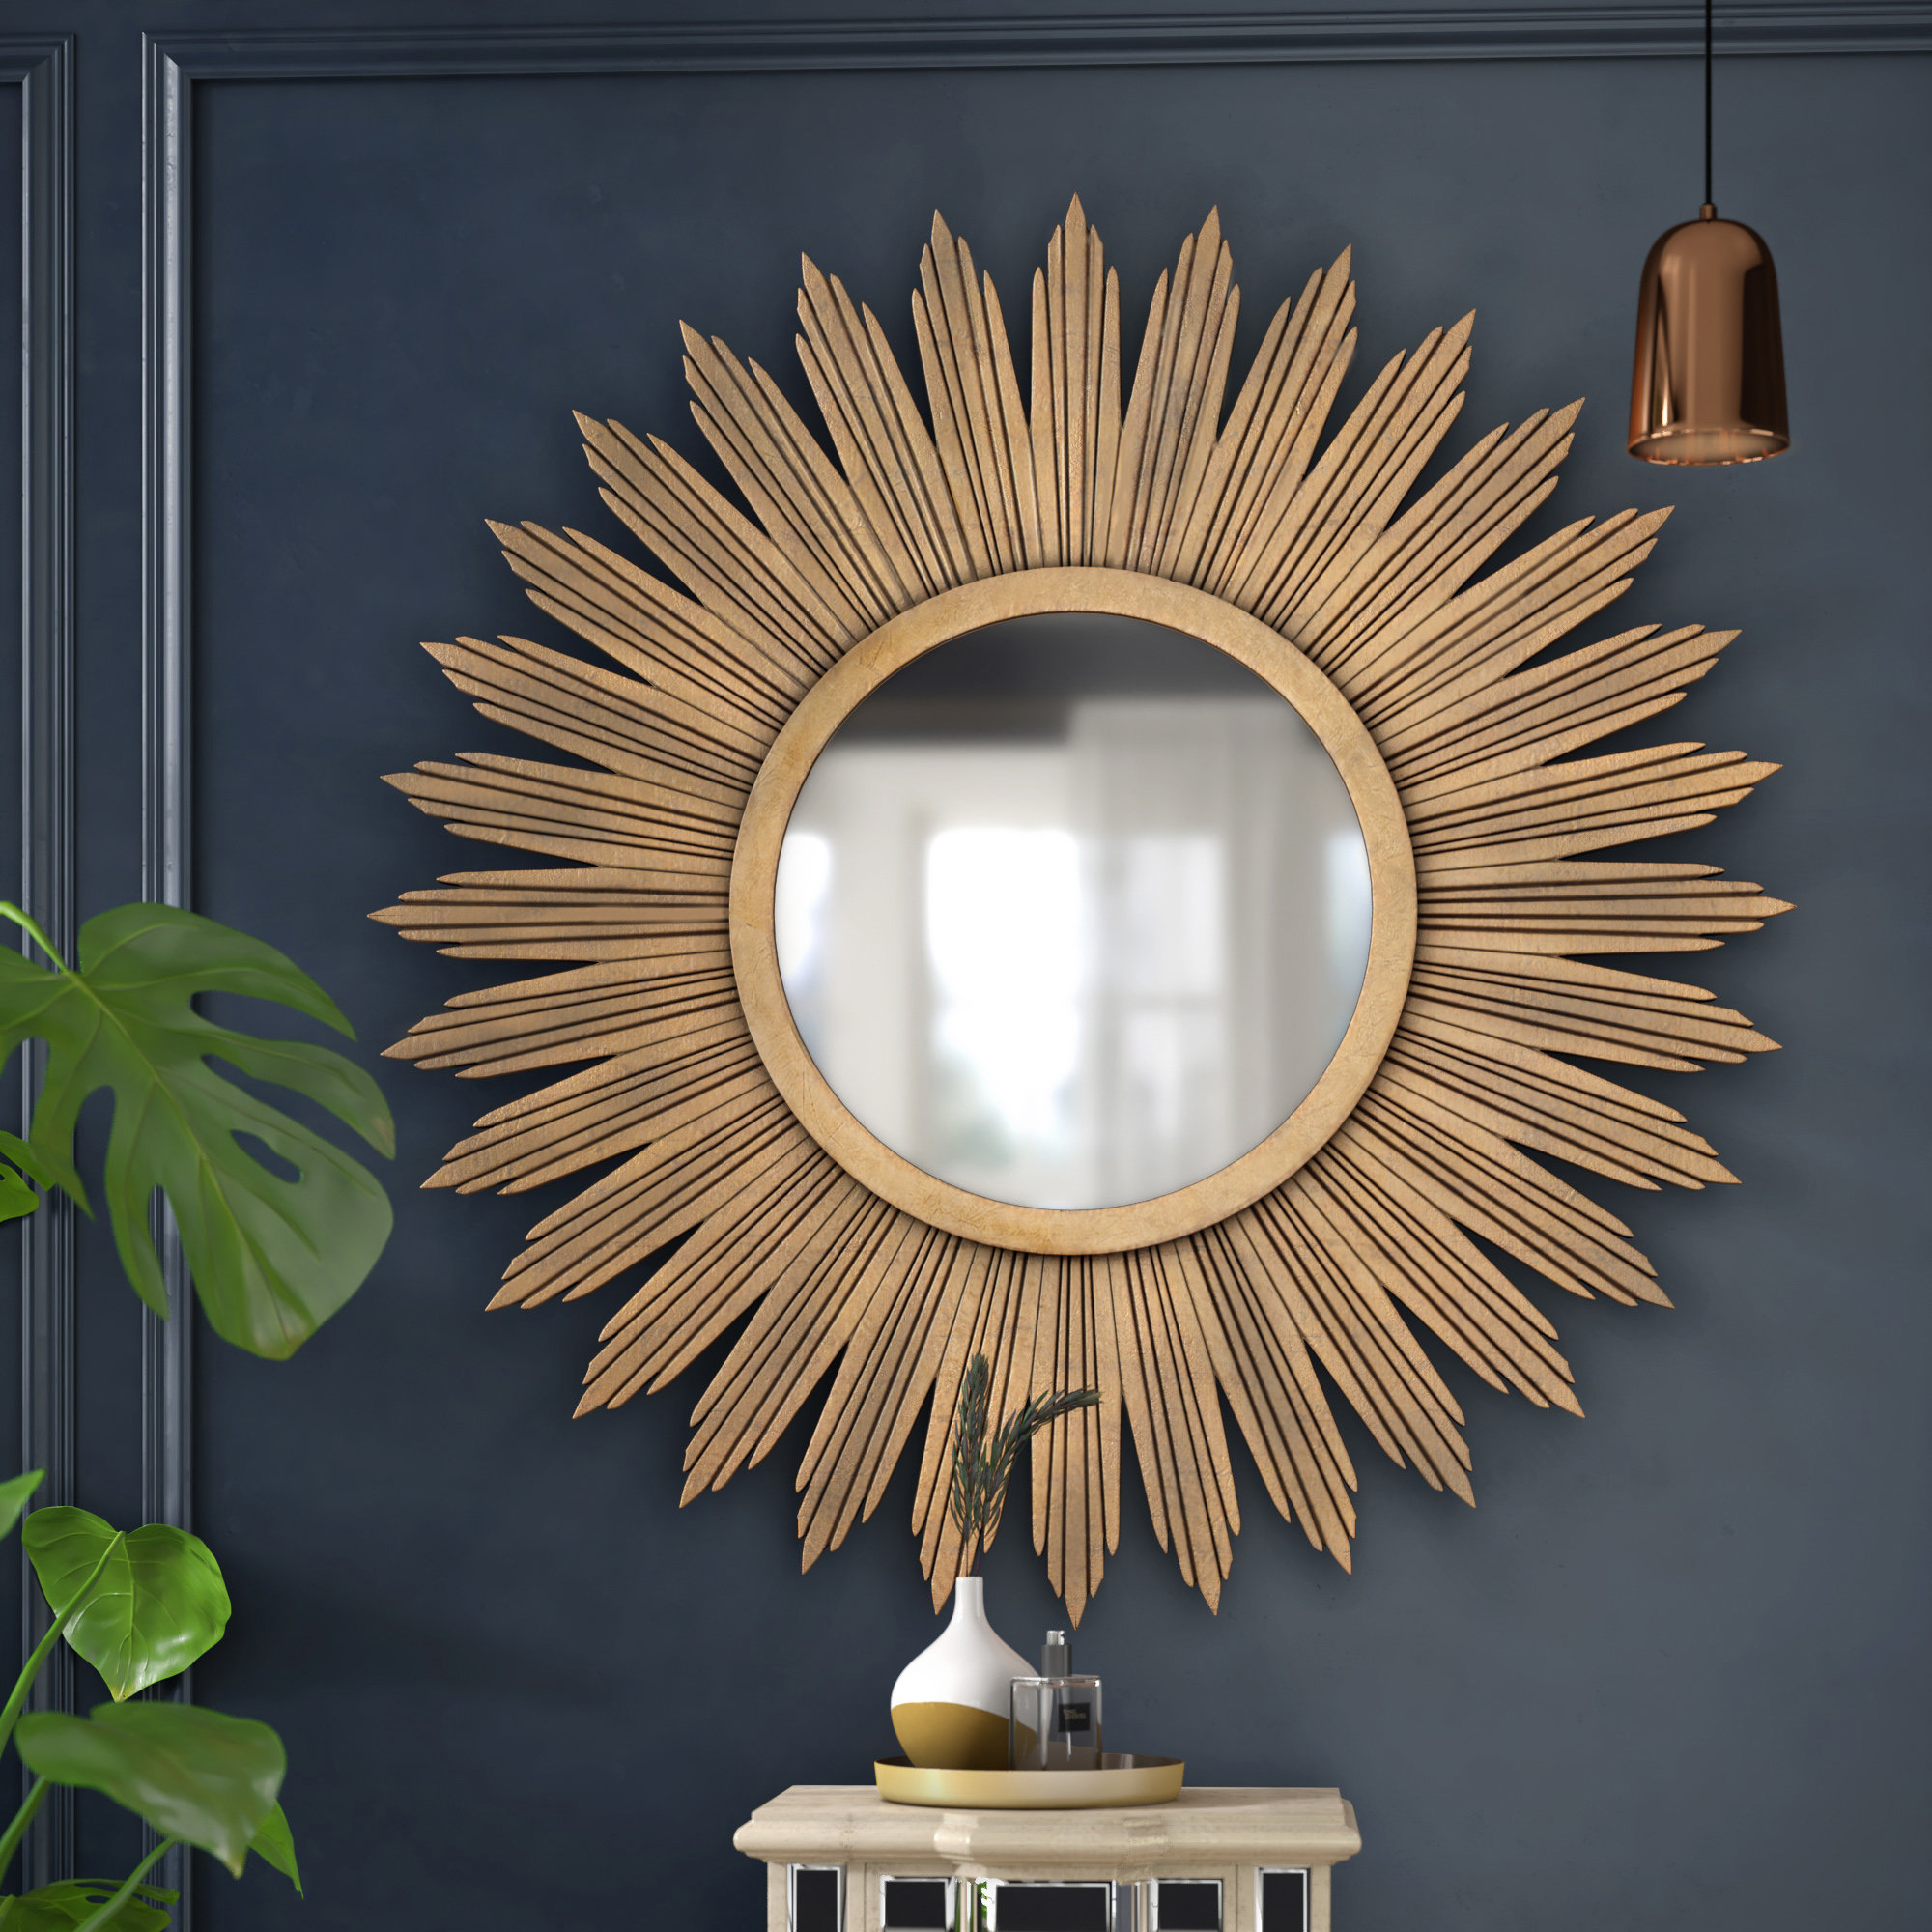 Aged Gold Wall Décor Modern & Contemporary Wall Mirror inside Starburst Wall Decor By Willa Arlo Interiors (Image 3 of 30)